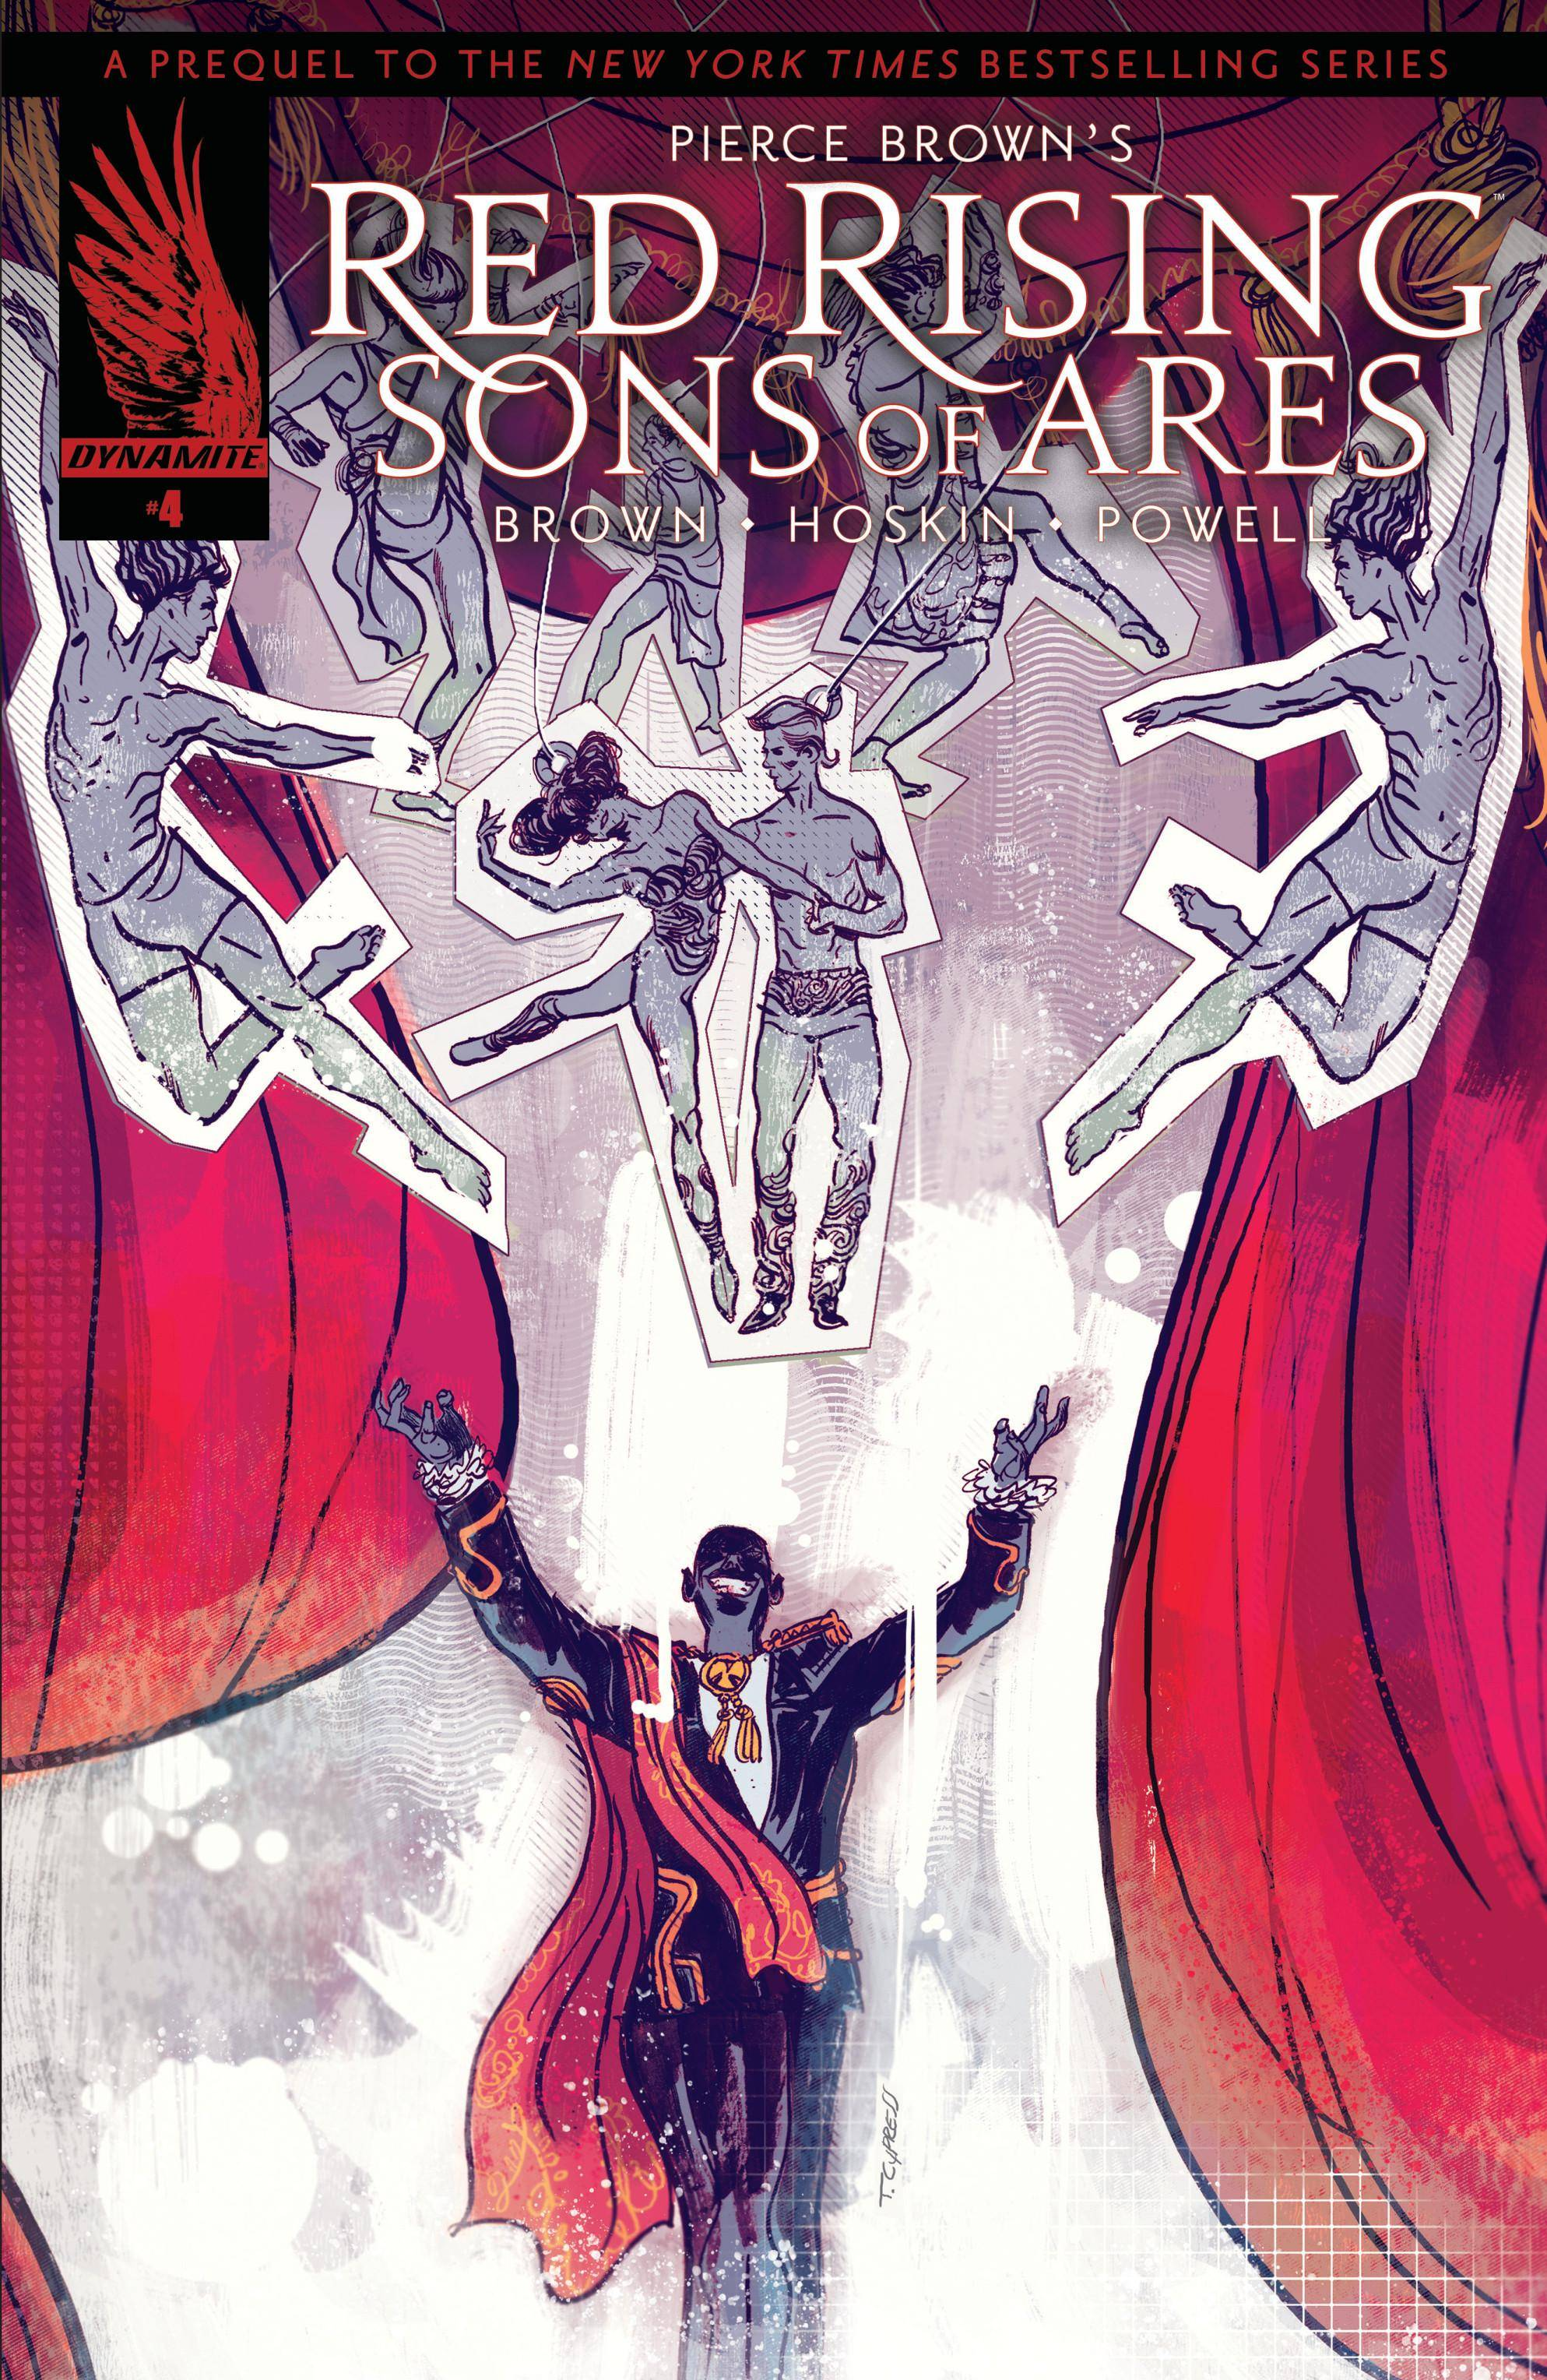 Pierce Browns Red Rising - Sons of Ares 004 2017 2 covers